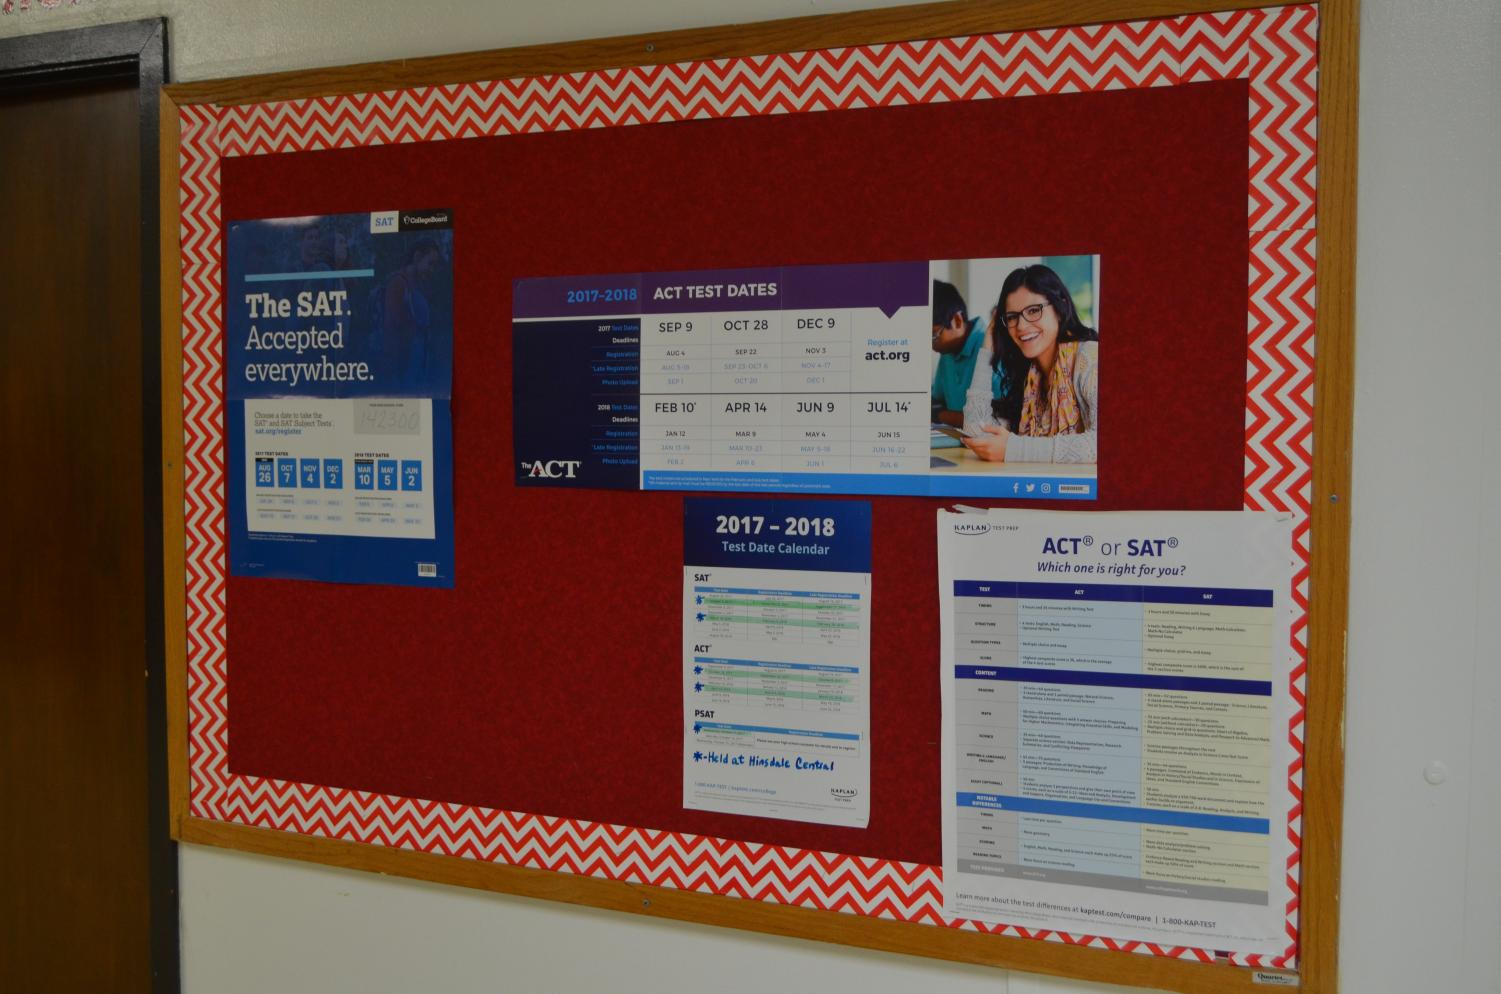 Posters outside of the Guidance Office help students by giving the dates to upcoming SAT testing days and showing the difference between the SAT and ACT.